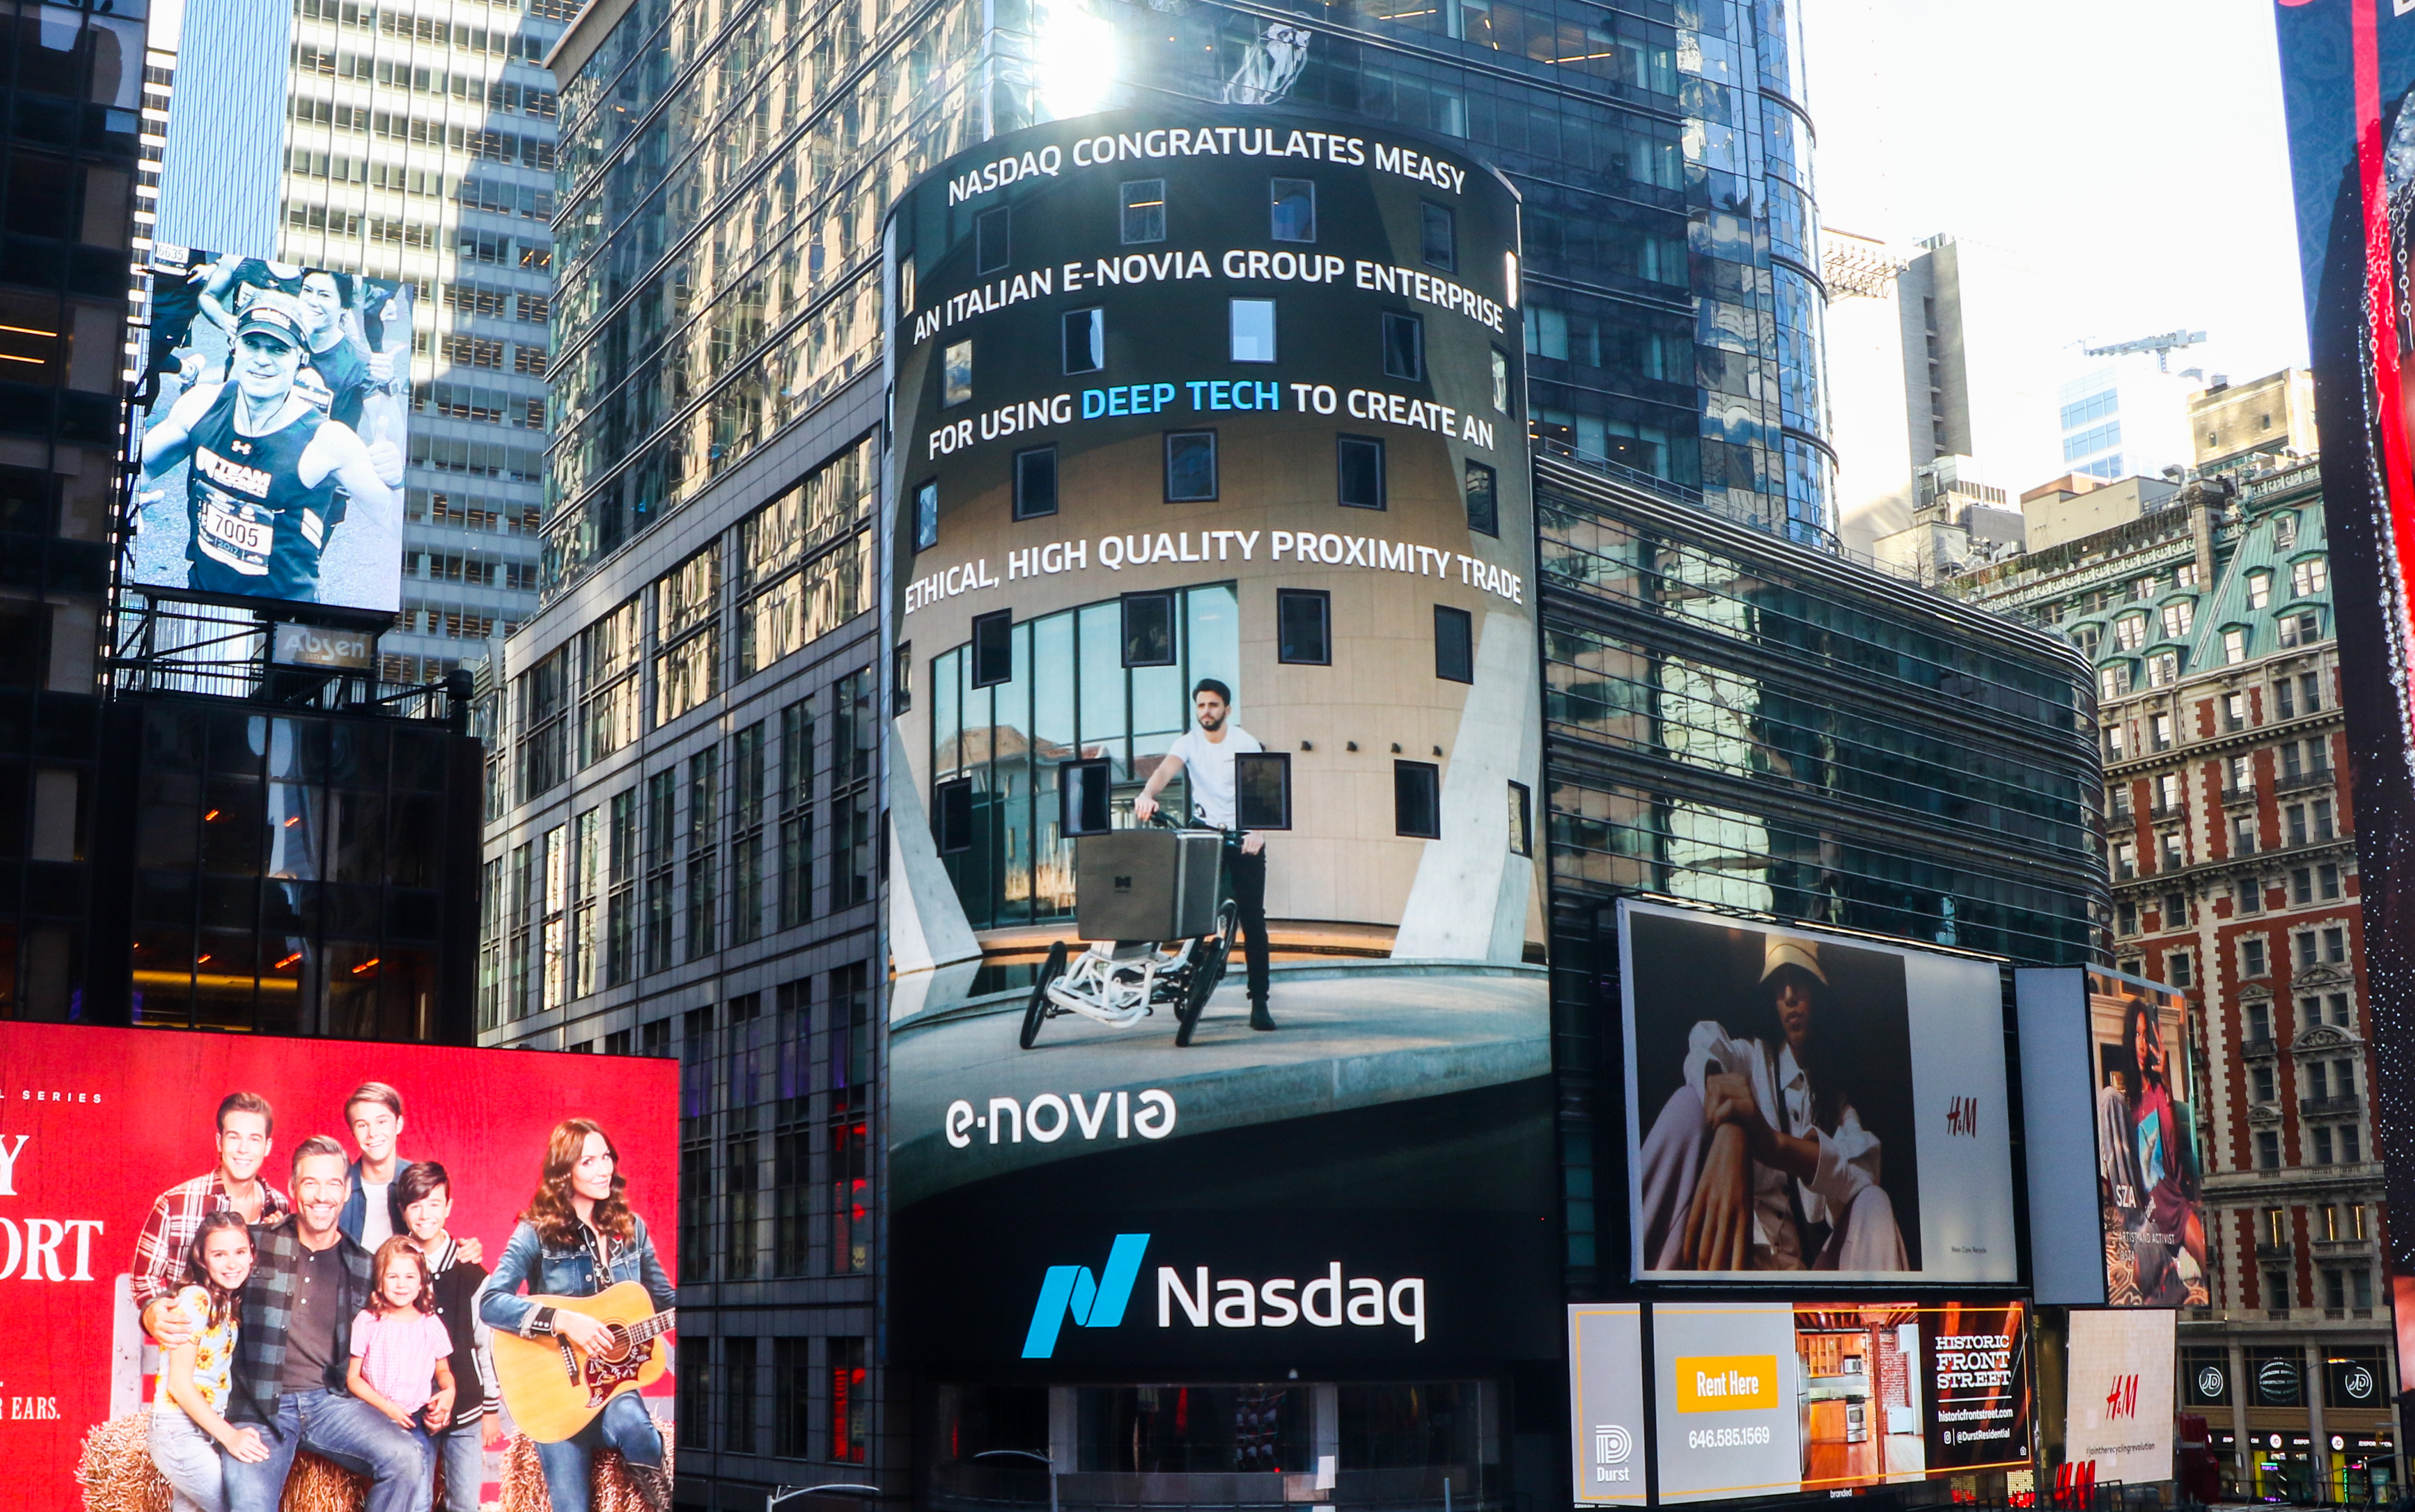 e-Novia and Measy on the NASDAQ Tower in New York